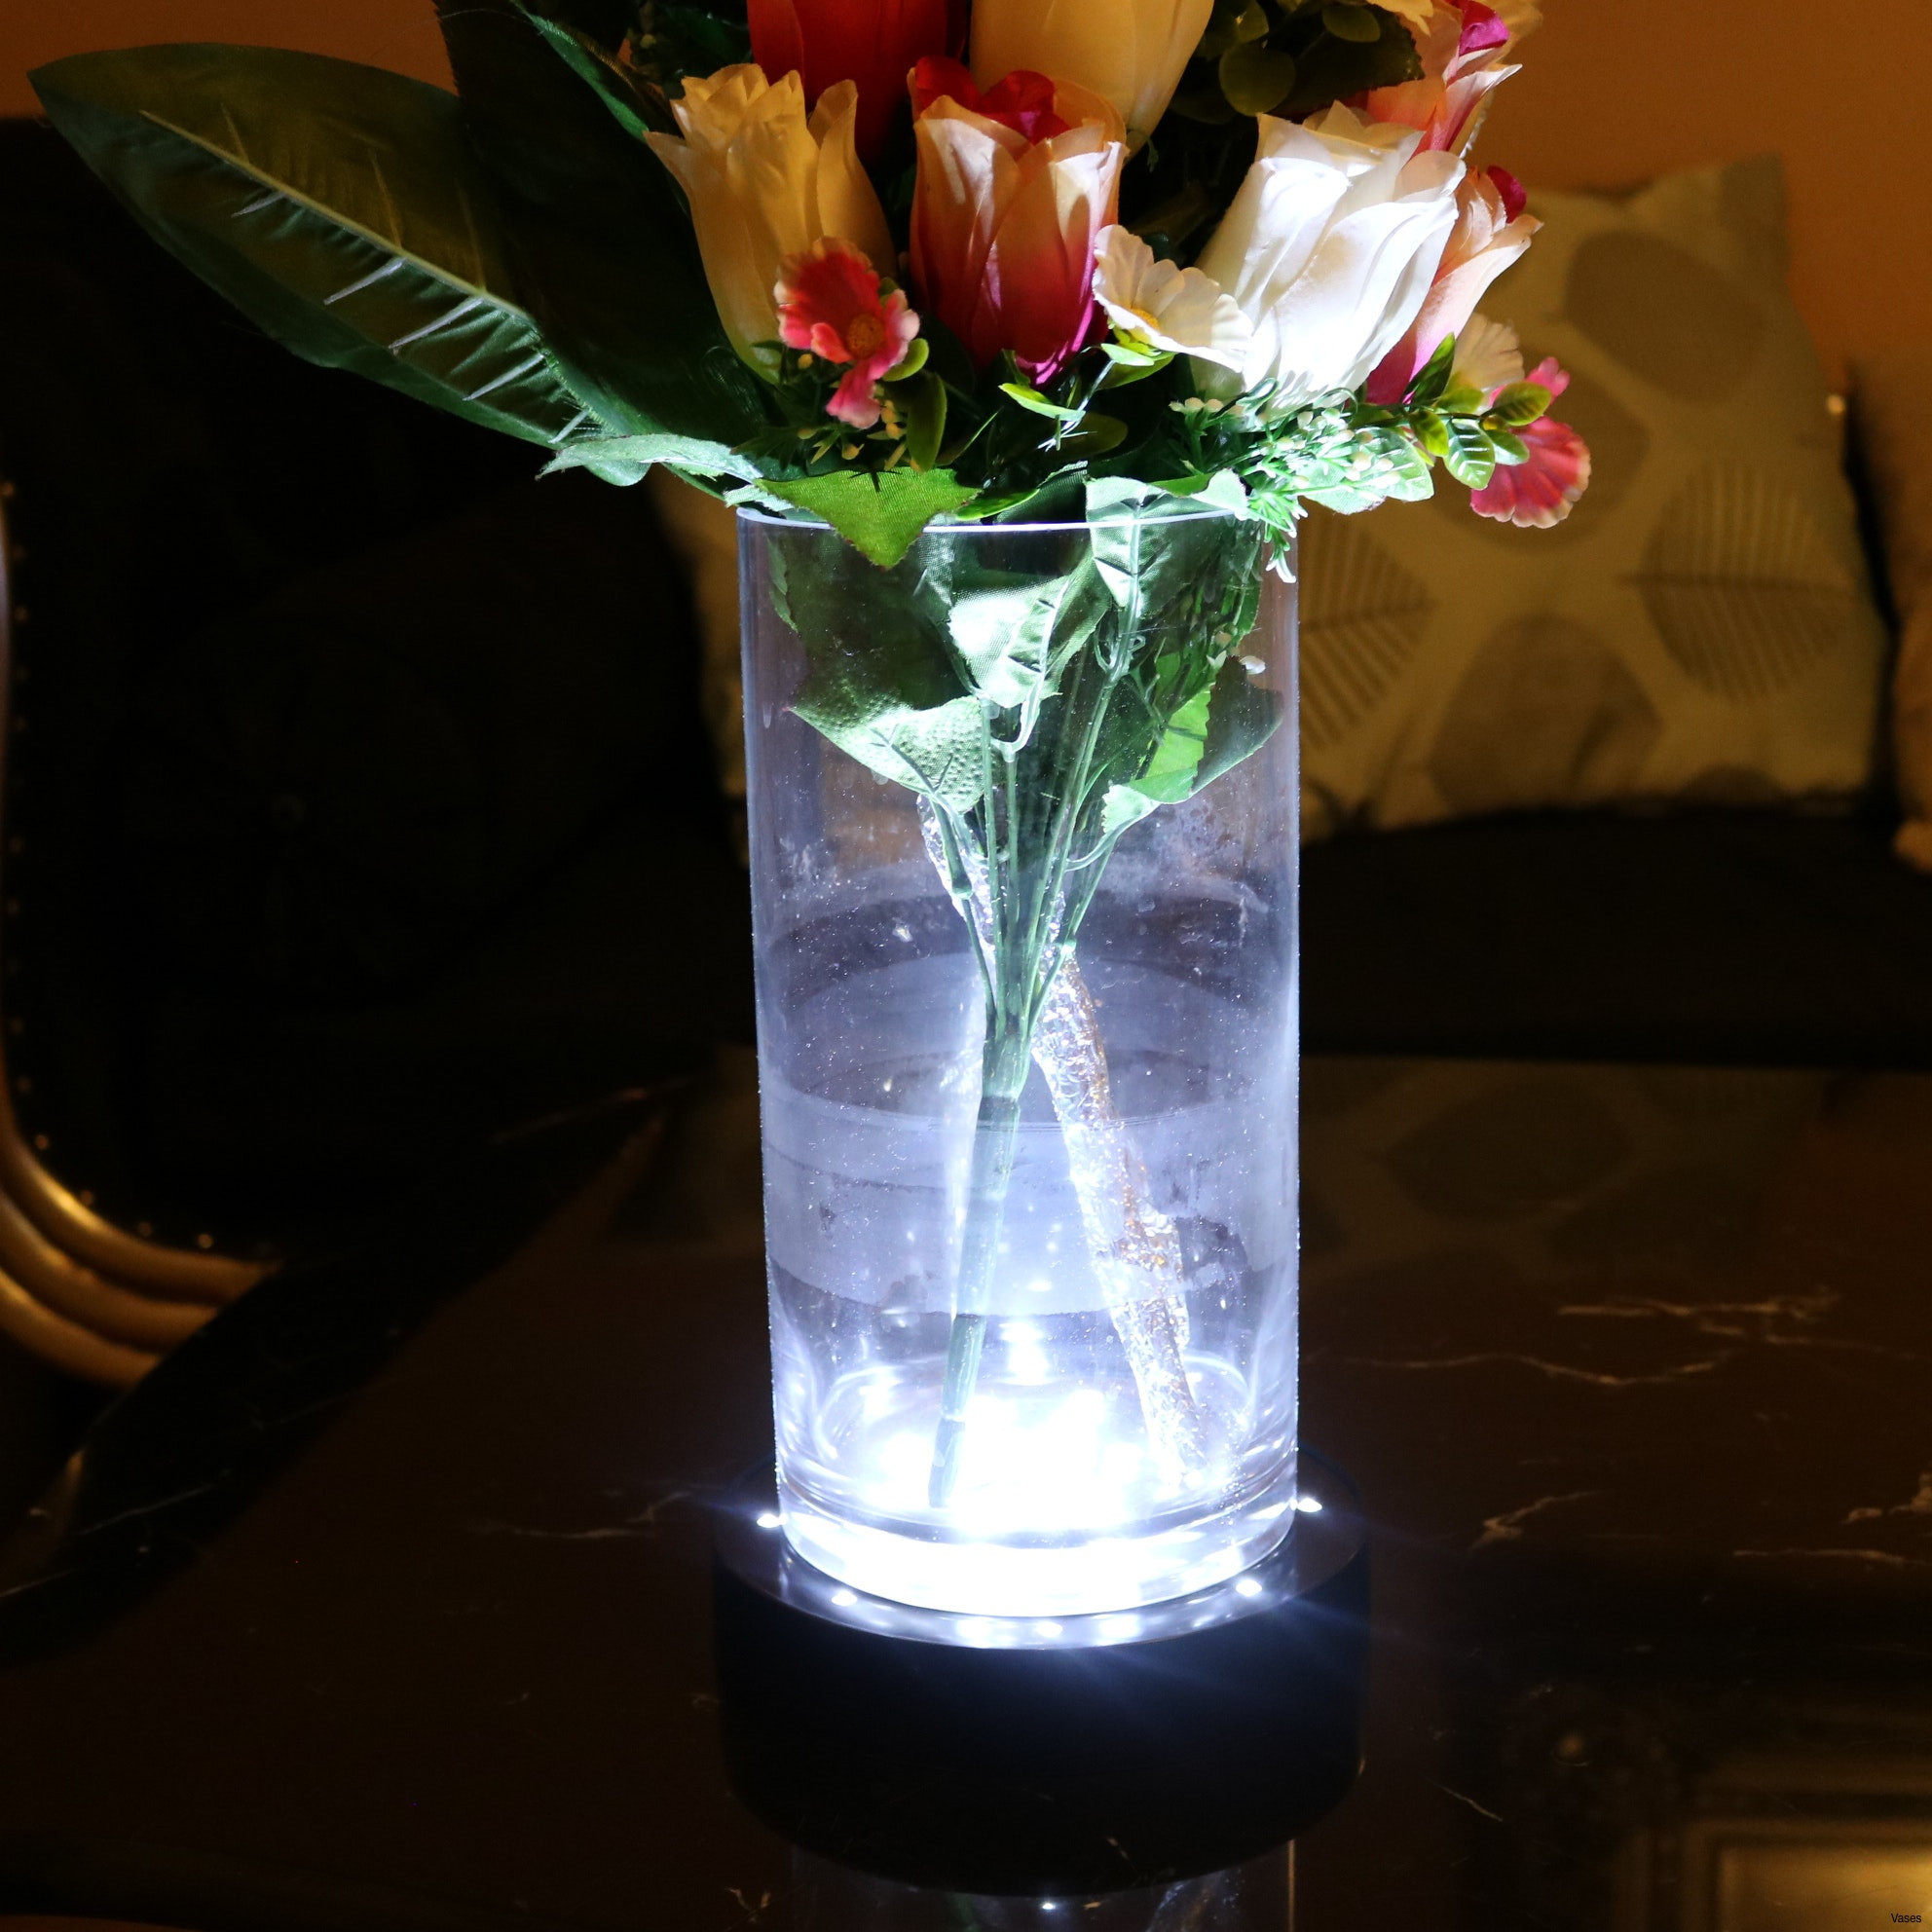 Clear Plastic Vases Of Photos Of Plastic Trumpet Vase Vases Artificial Plants Collection with Regard to Plastic Trumpet Vase Image Vases Disposable Plastic Single Cheap Flower Rose Vasei 0d Design Of Photos